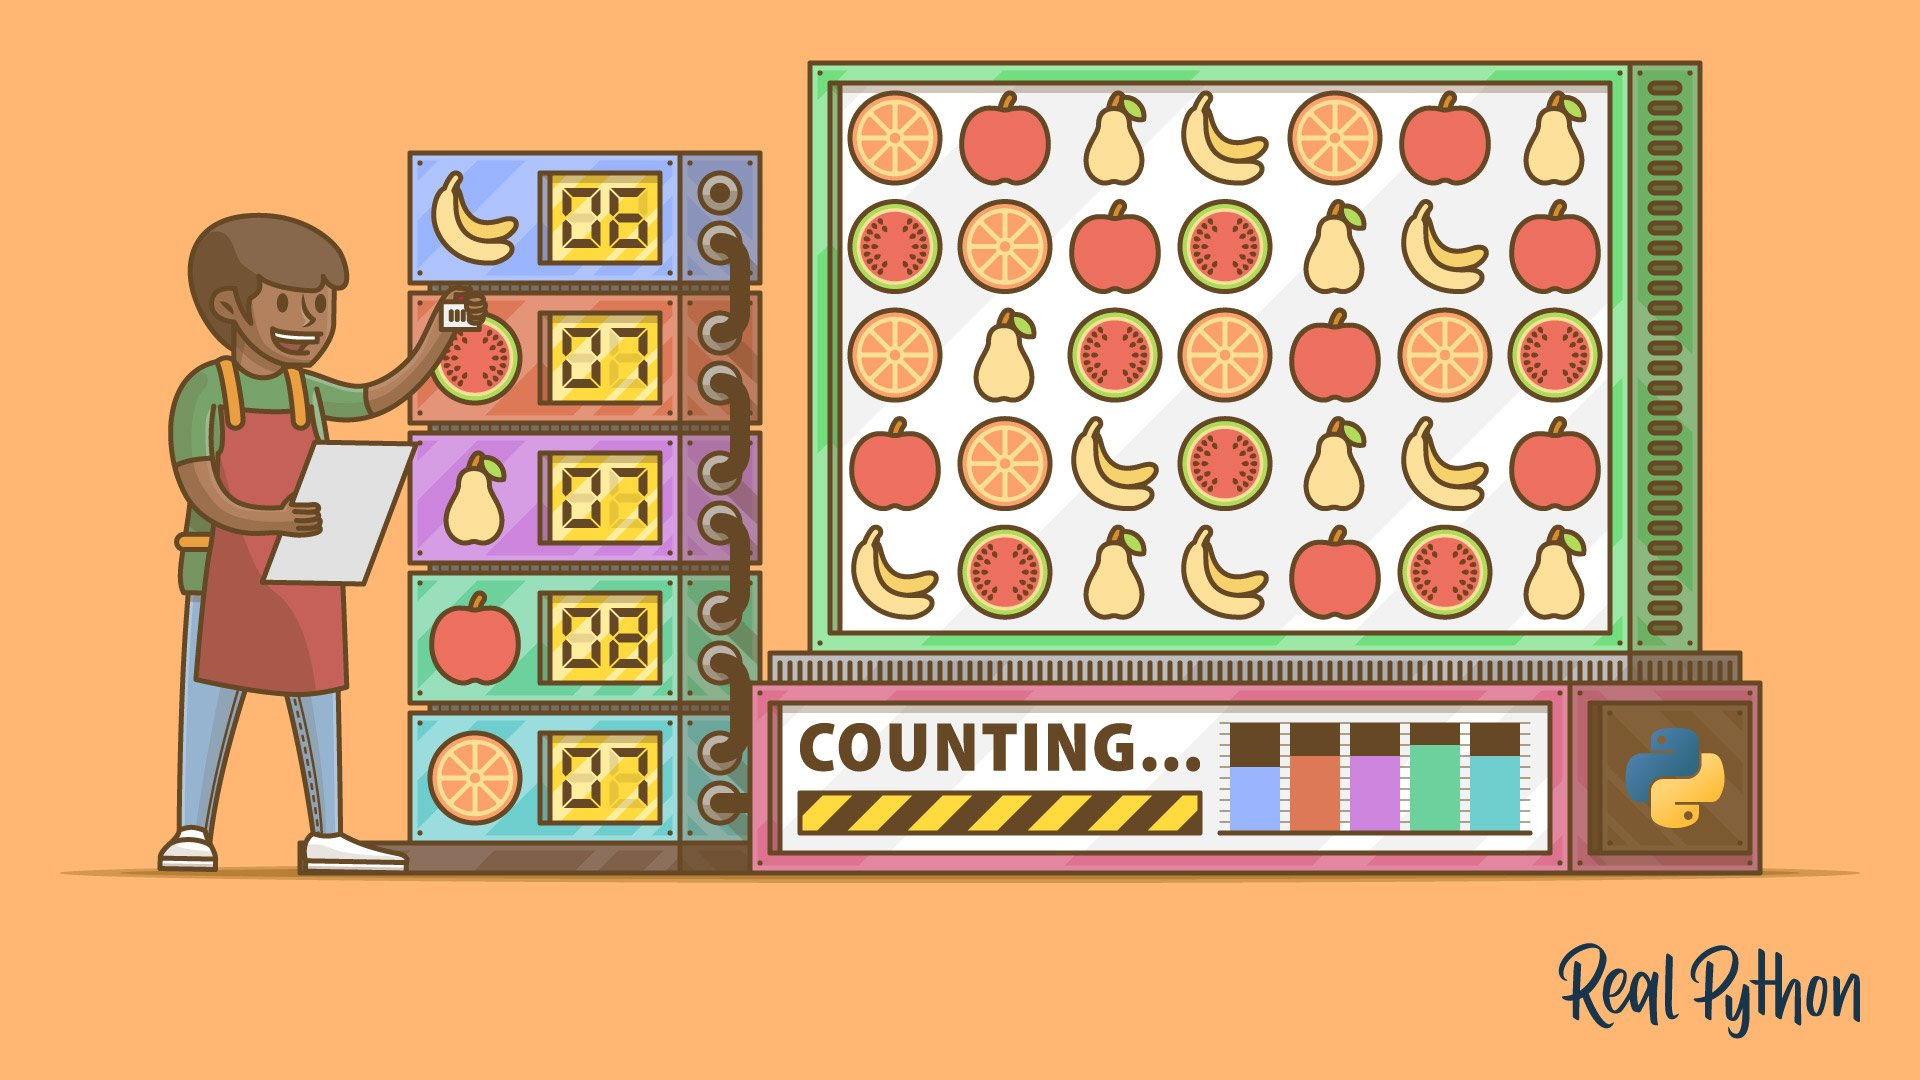 Python's Counter: The Pythonic Way to Count Objects